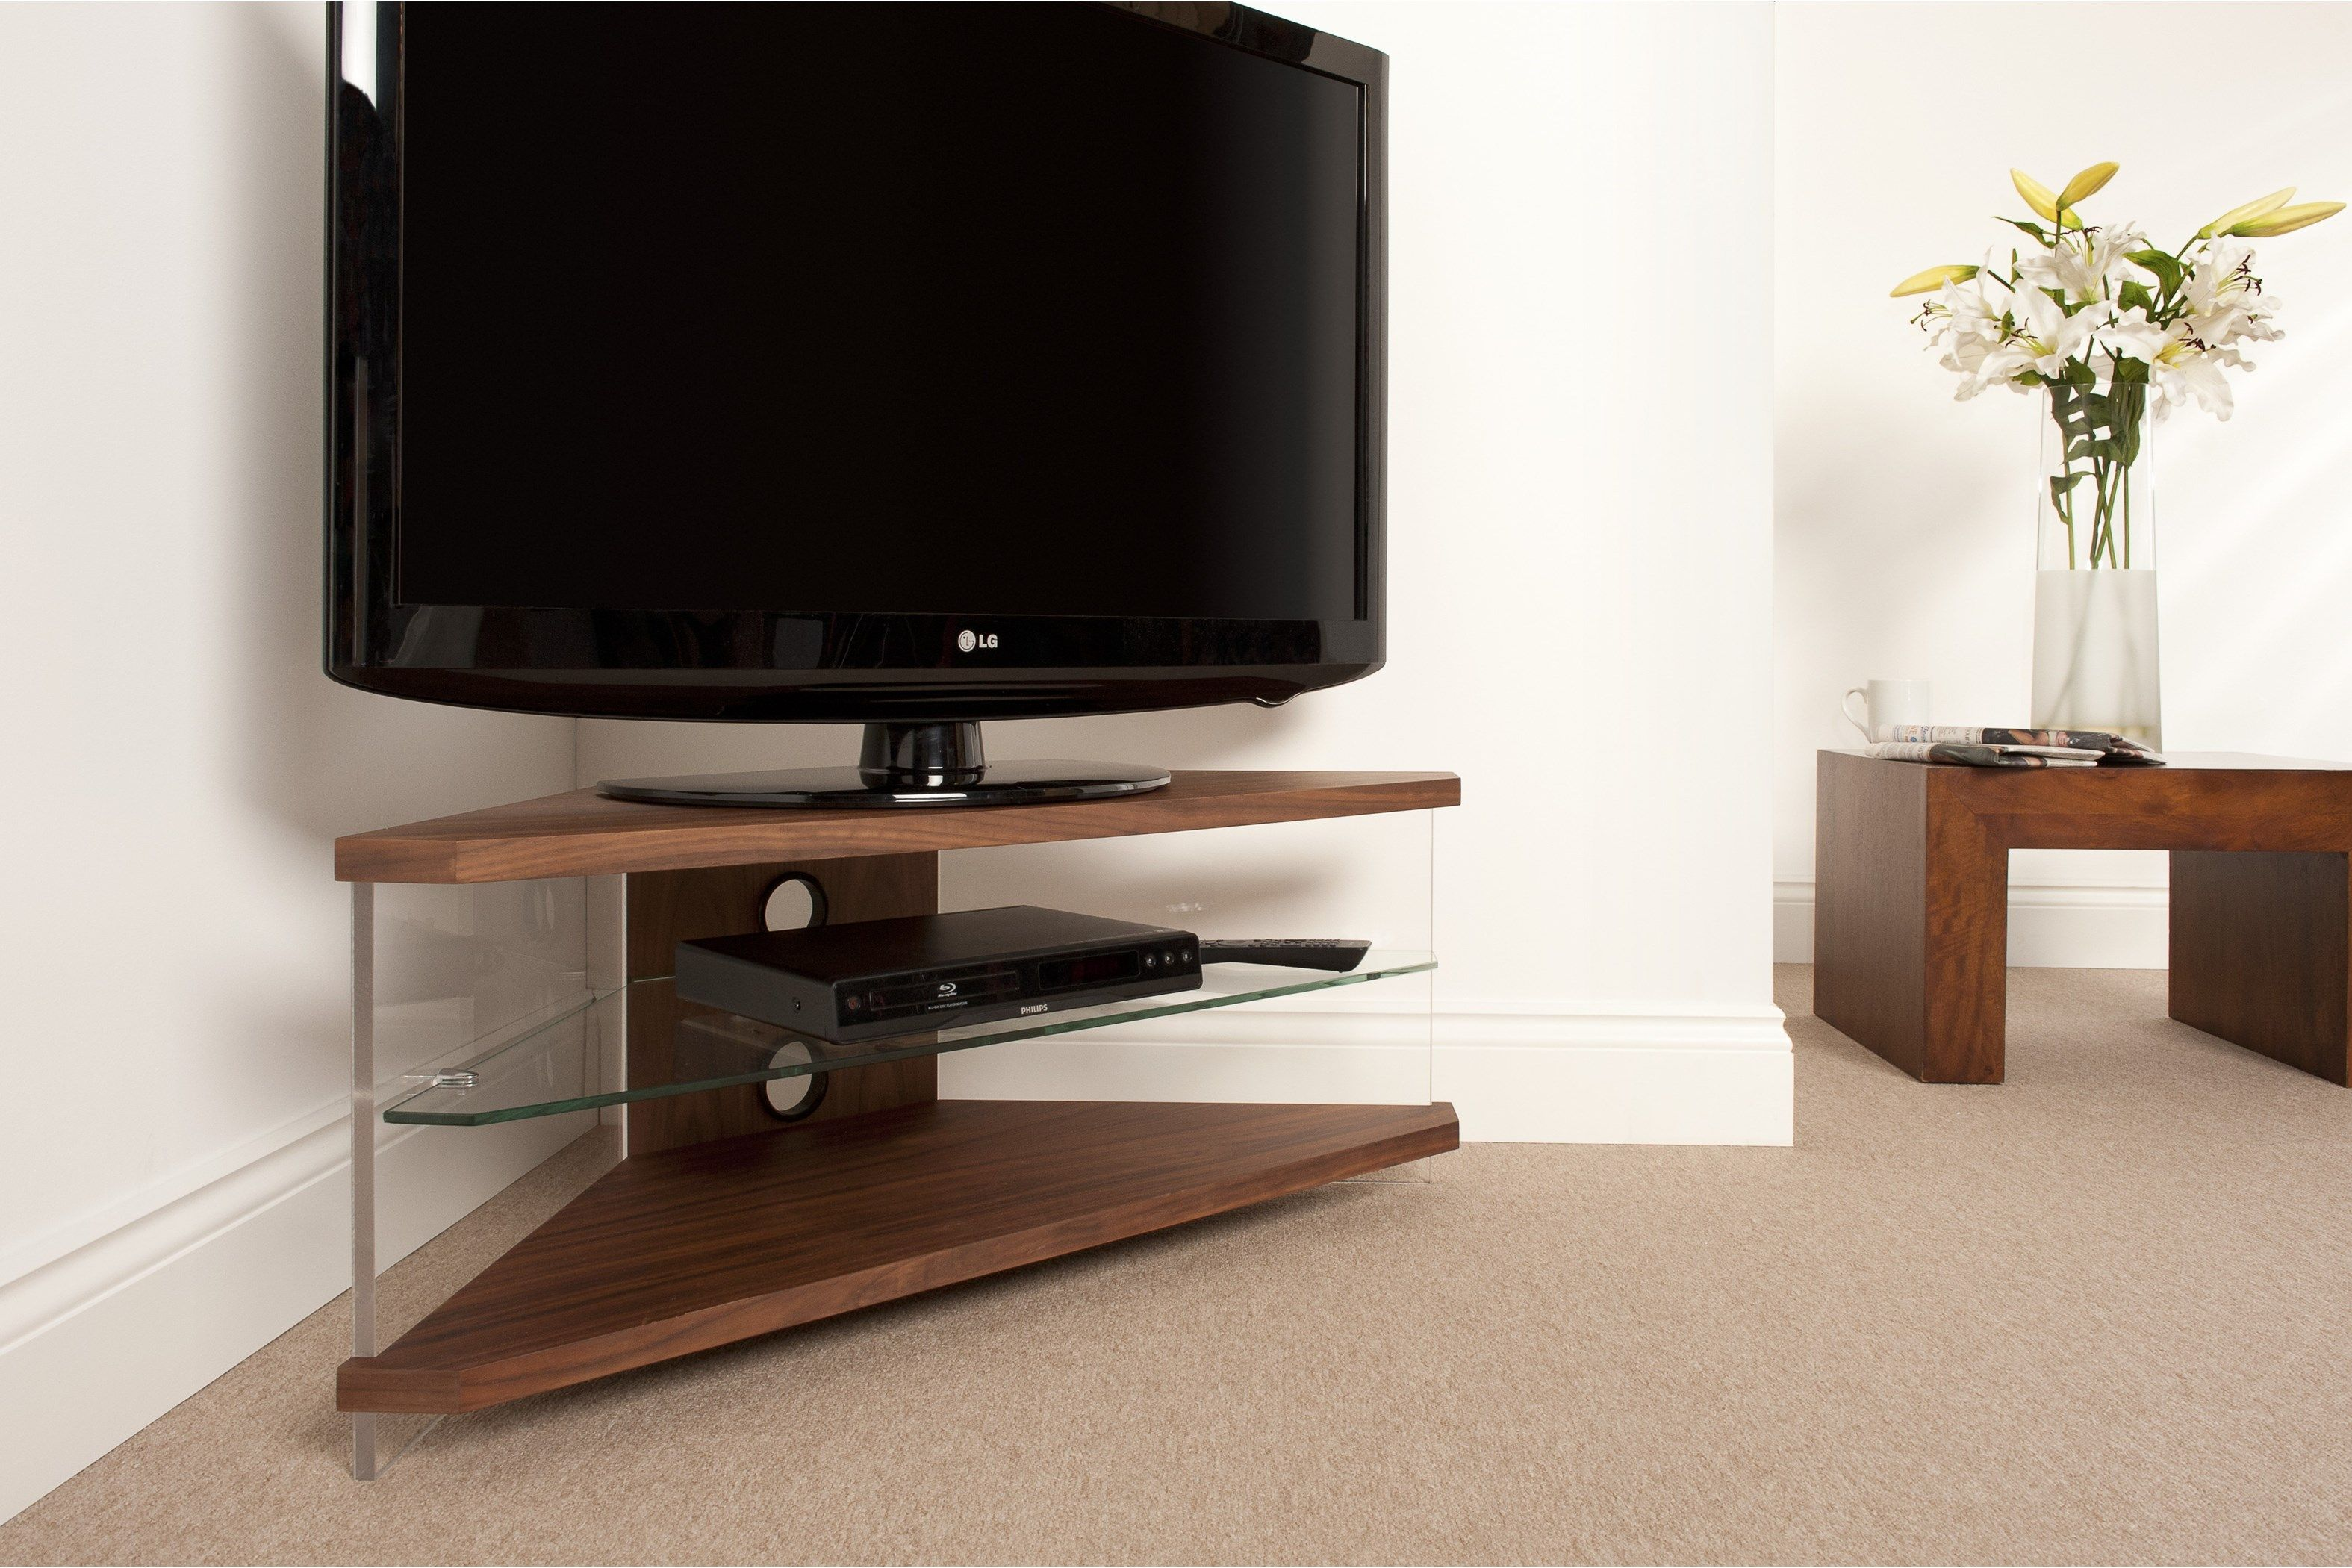 Most Stylish Rustic And Modern Tv Stand Ideas Tags Unit Fireplace Entertainment Center Stands Cabinet Ikea